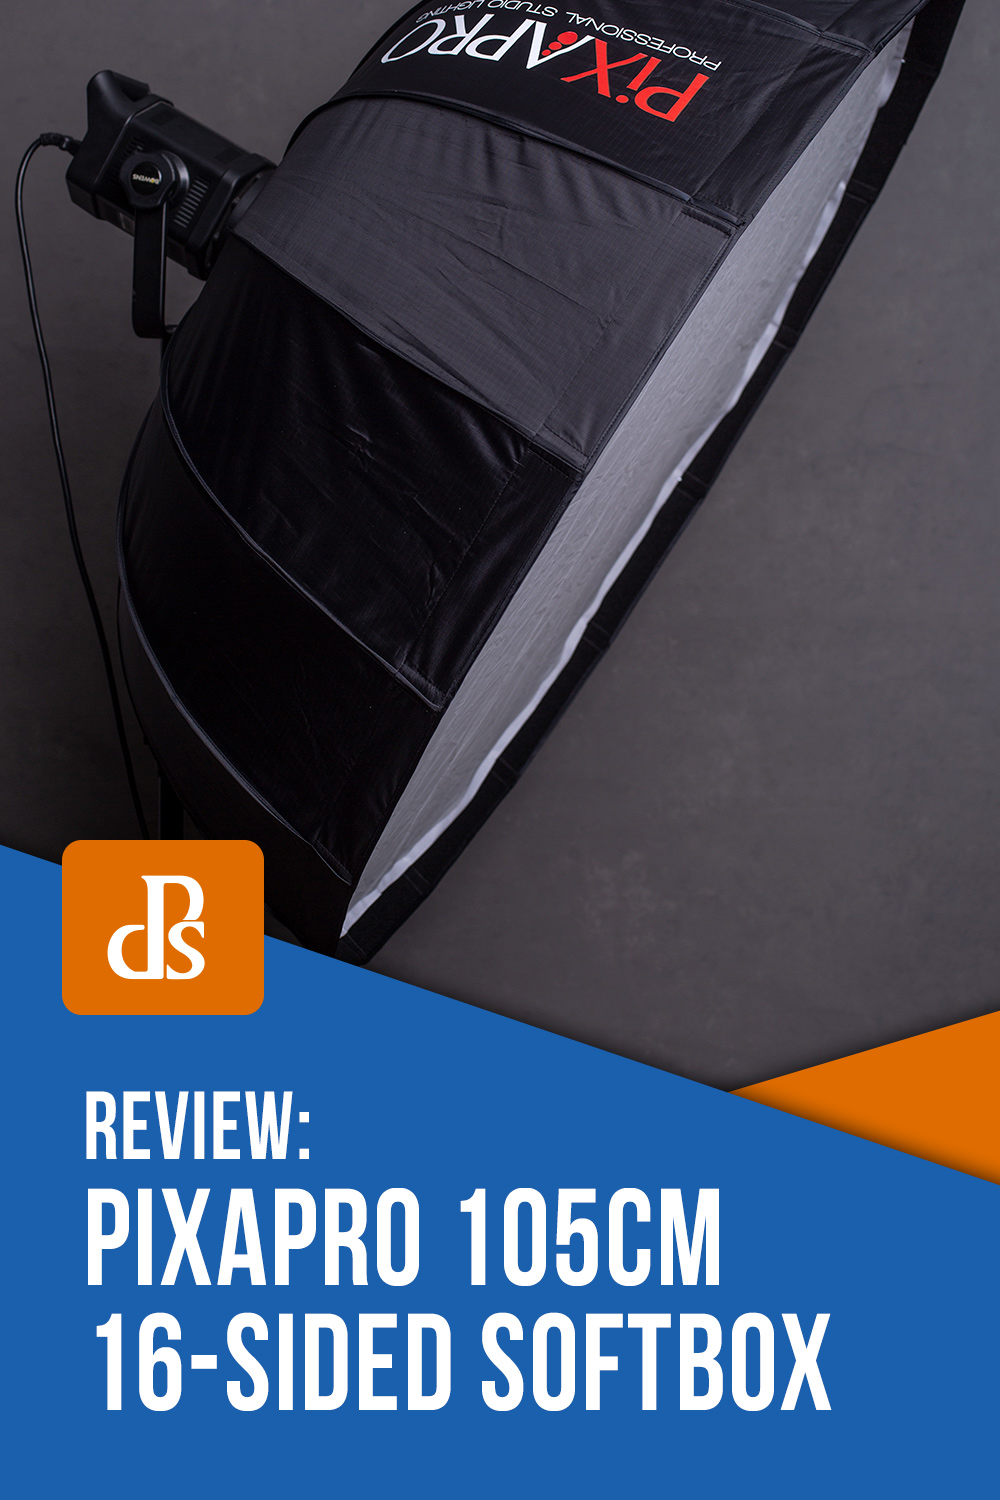 Review:  Pixapro 105cm 16-Sided Easy-Open Rice-Bowl Softbox